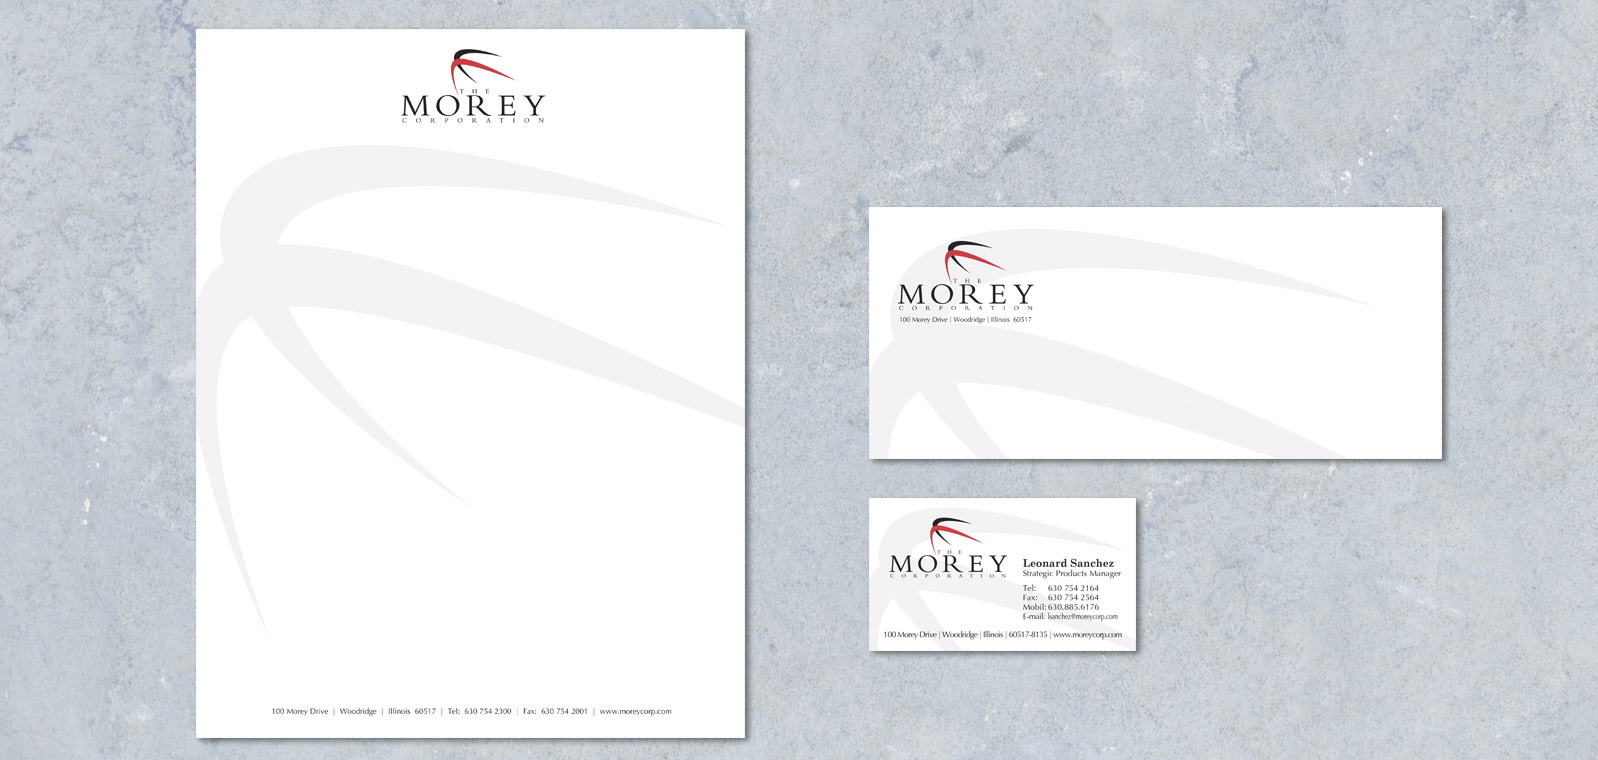 Corporate Branding Design from Roselle Branding Designer Controlled Color, Inc.